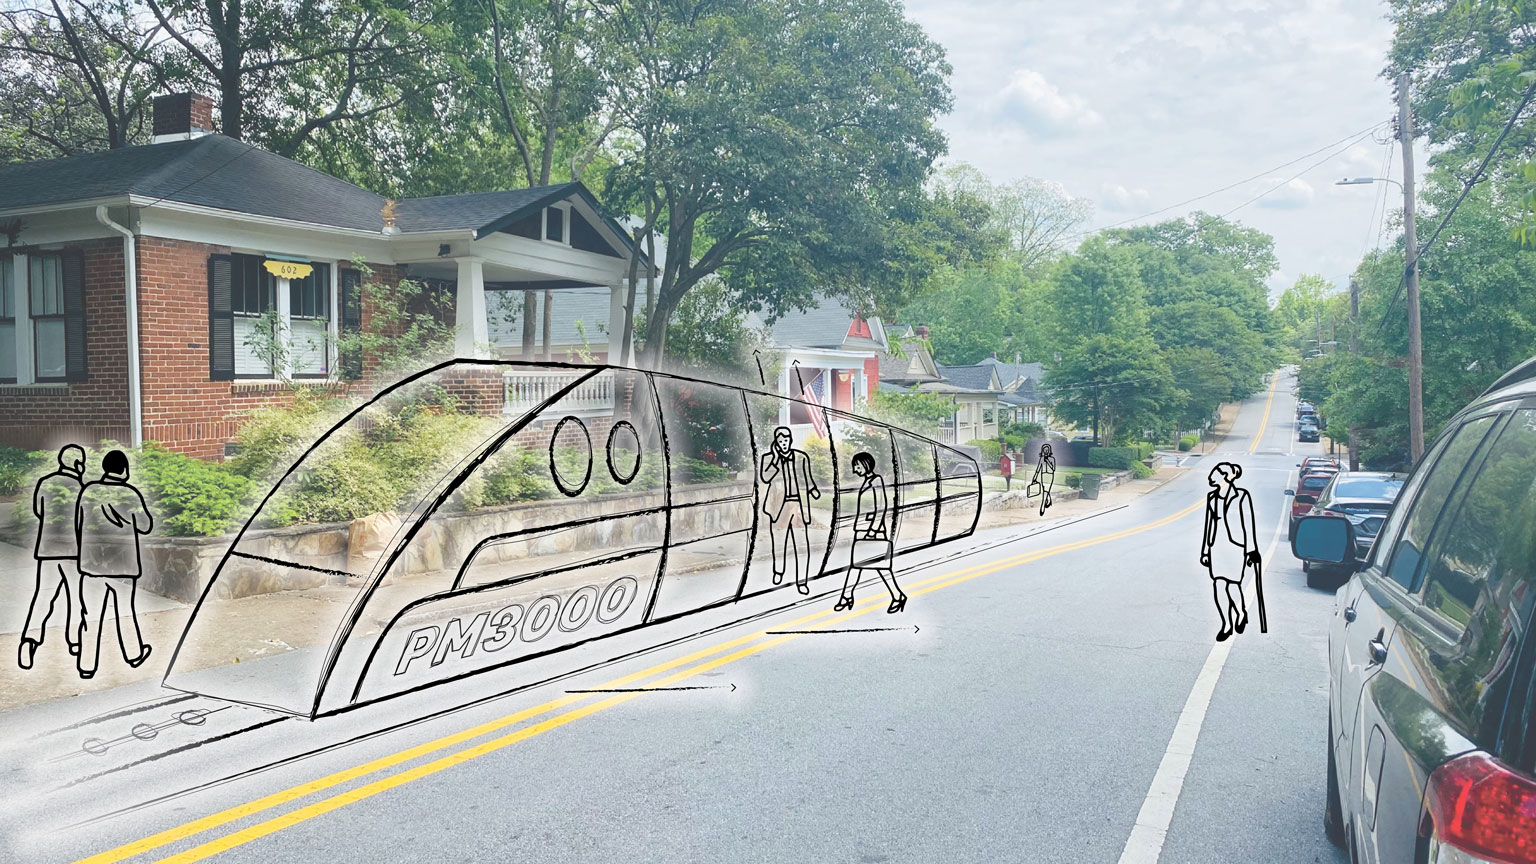 An illustration of a futuristic people mover overlaid on a photo of a house in a neighborhood in East Atlanta.